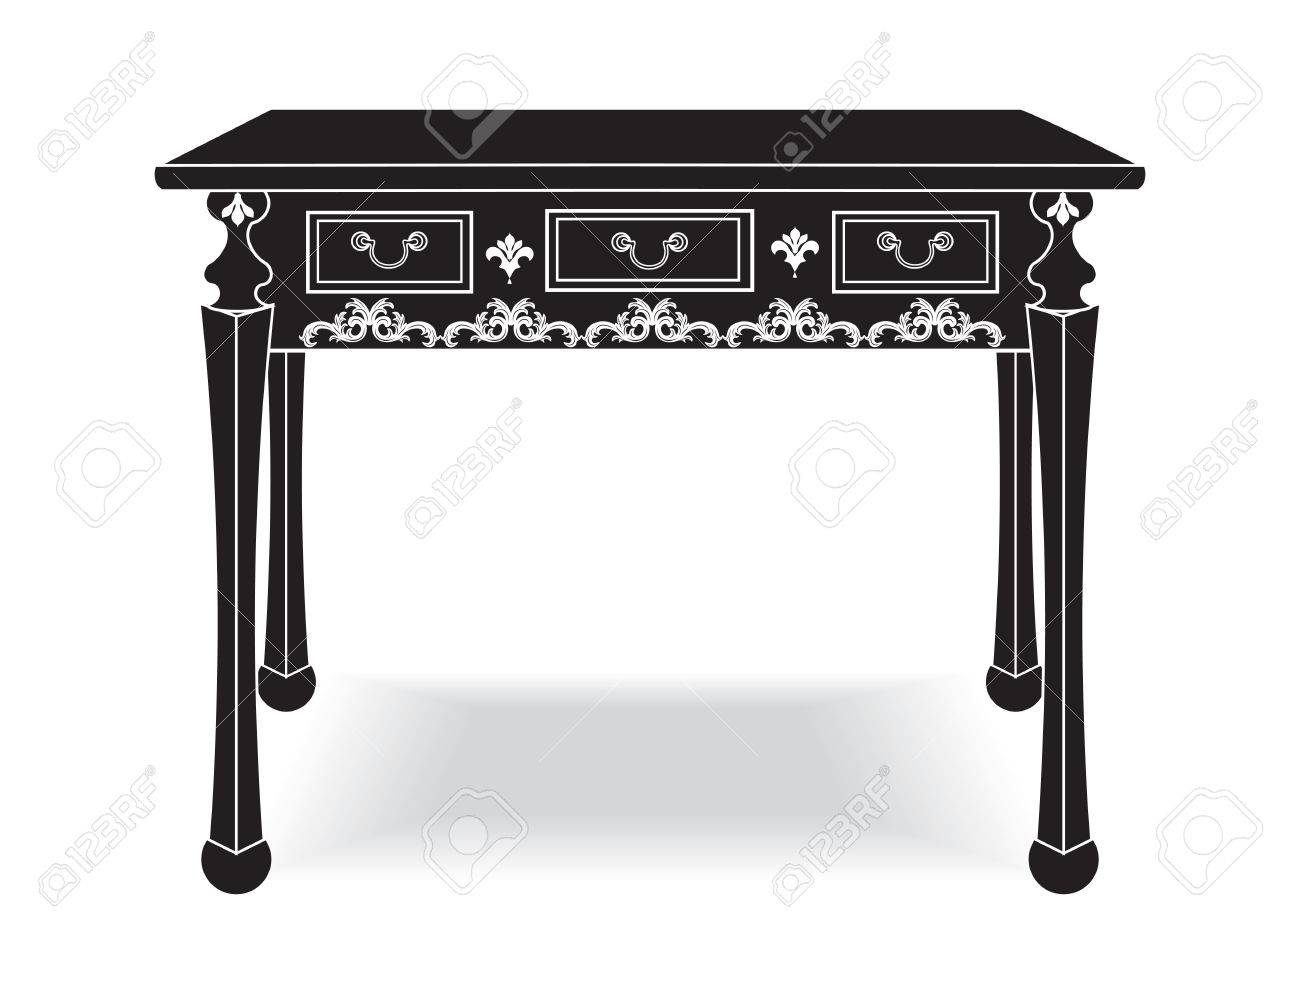 Biedermeier Style Table With Rich Ornaments. English Carved Ornaments  Furniture. Vector Vintage Exquisite Style